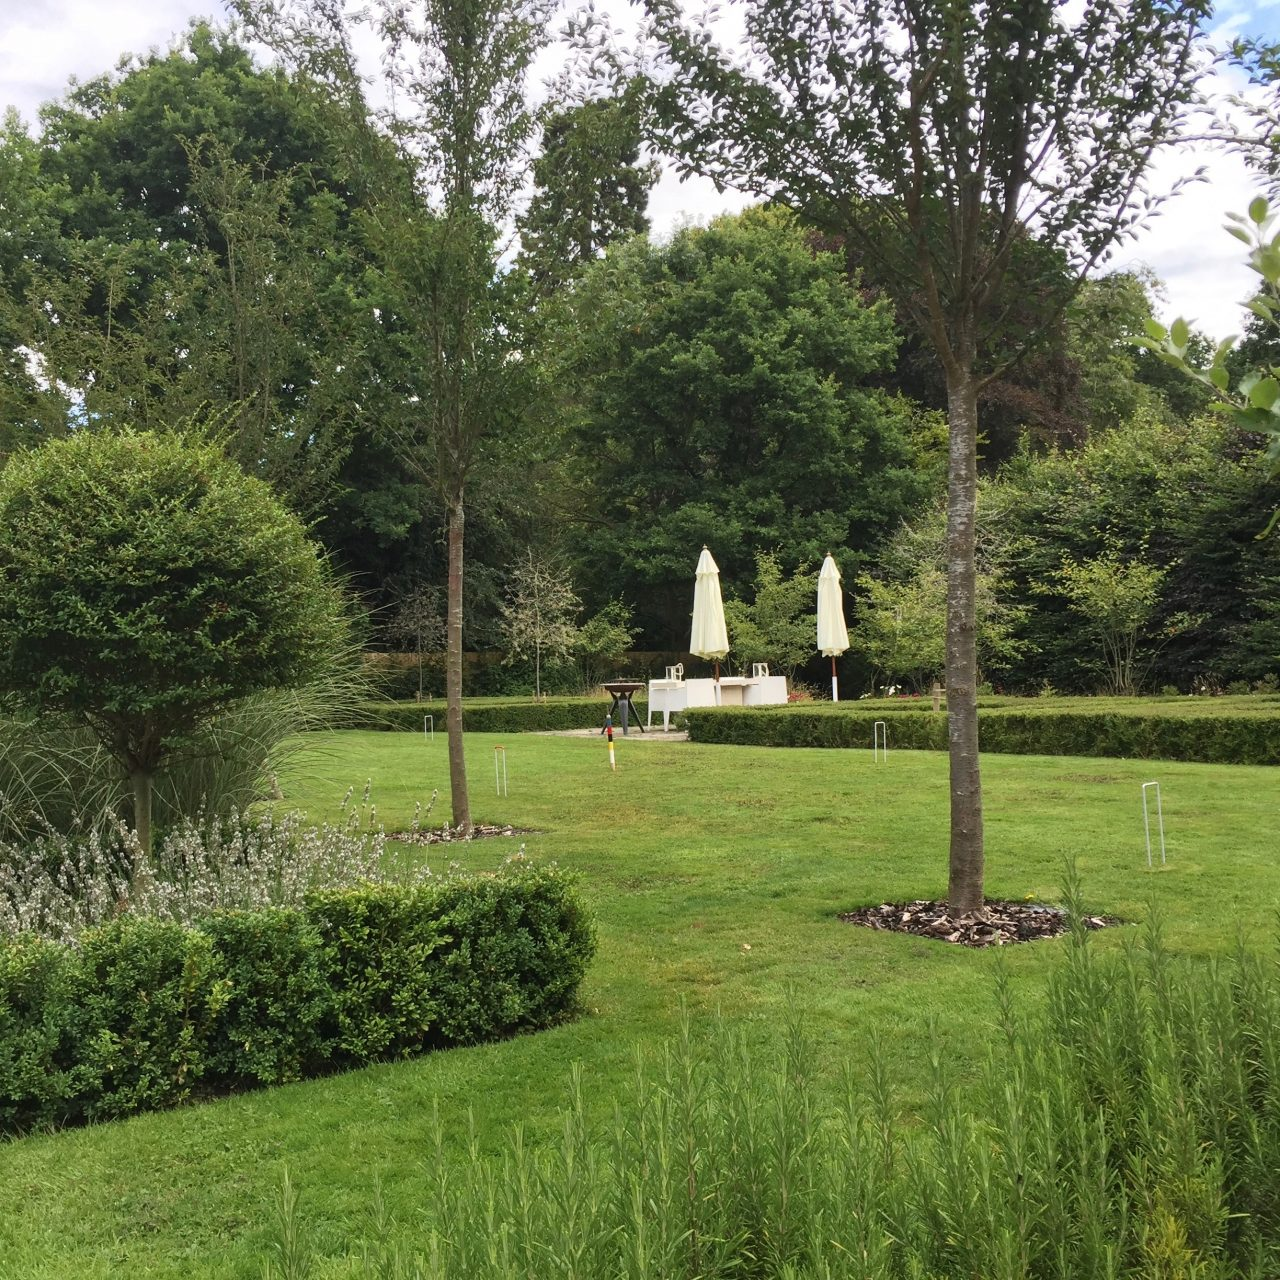 A view of my own garden looking at the parterre with topiary squares & Pyrus salicifolia (weeping pear) trees